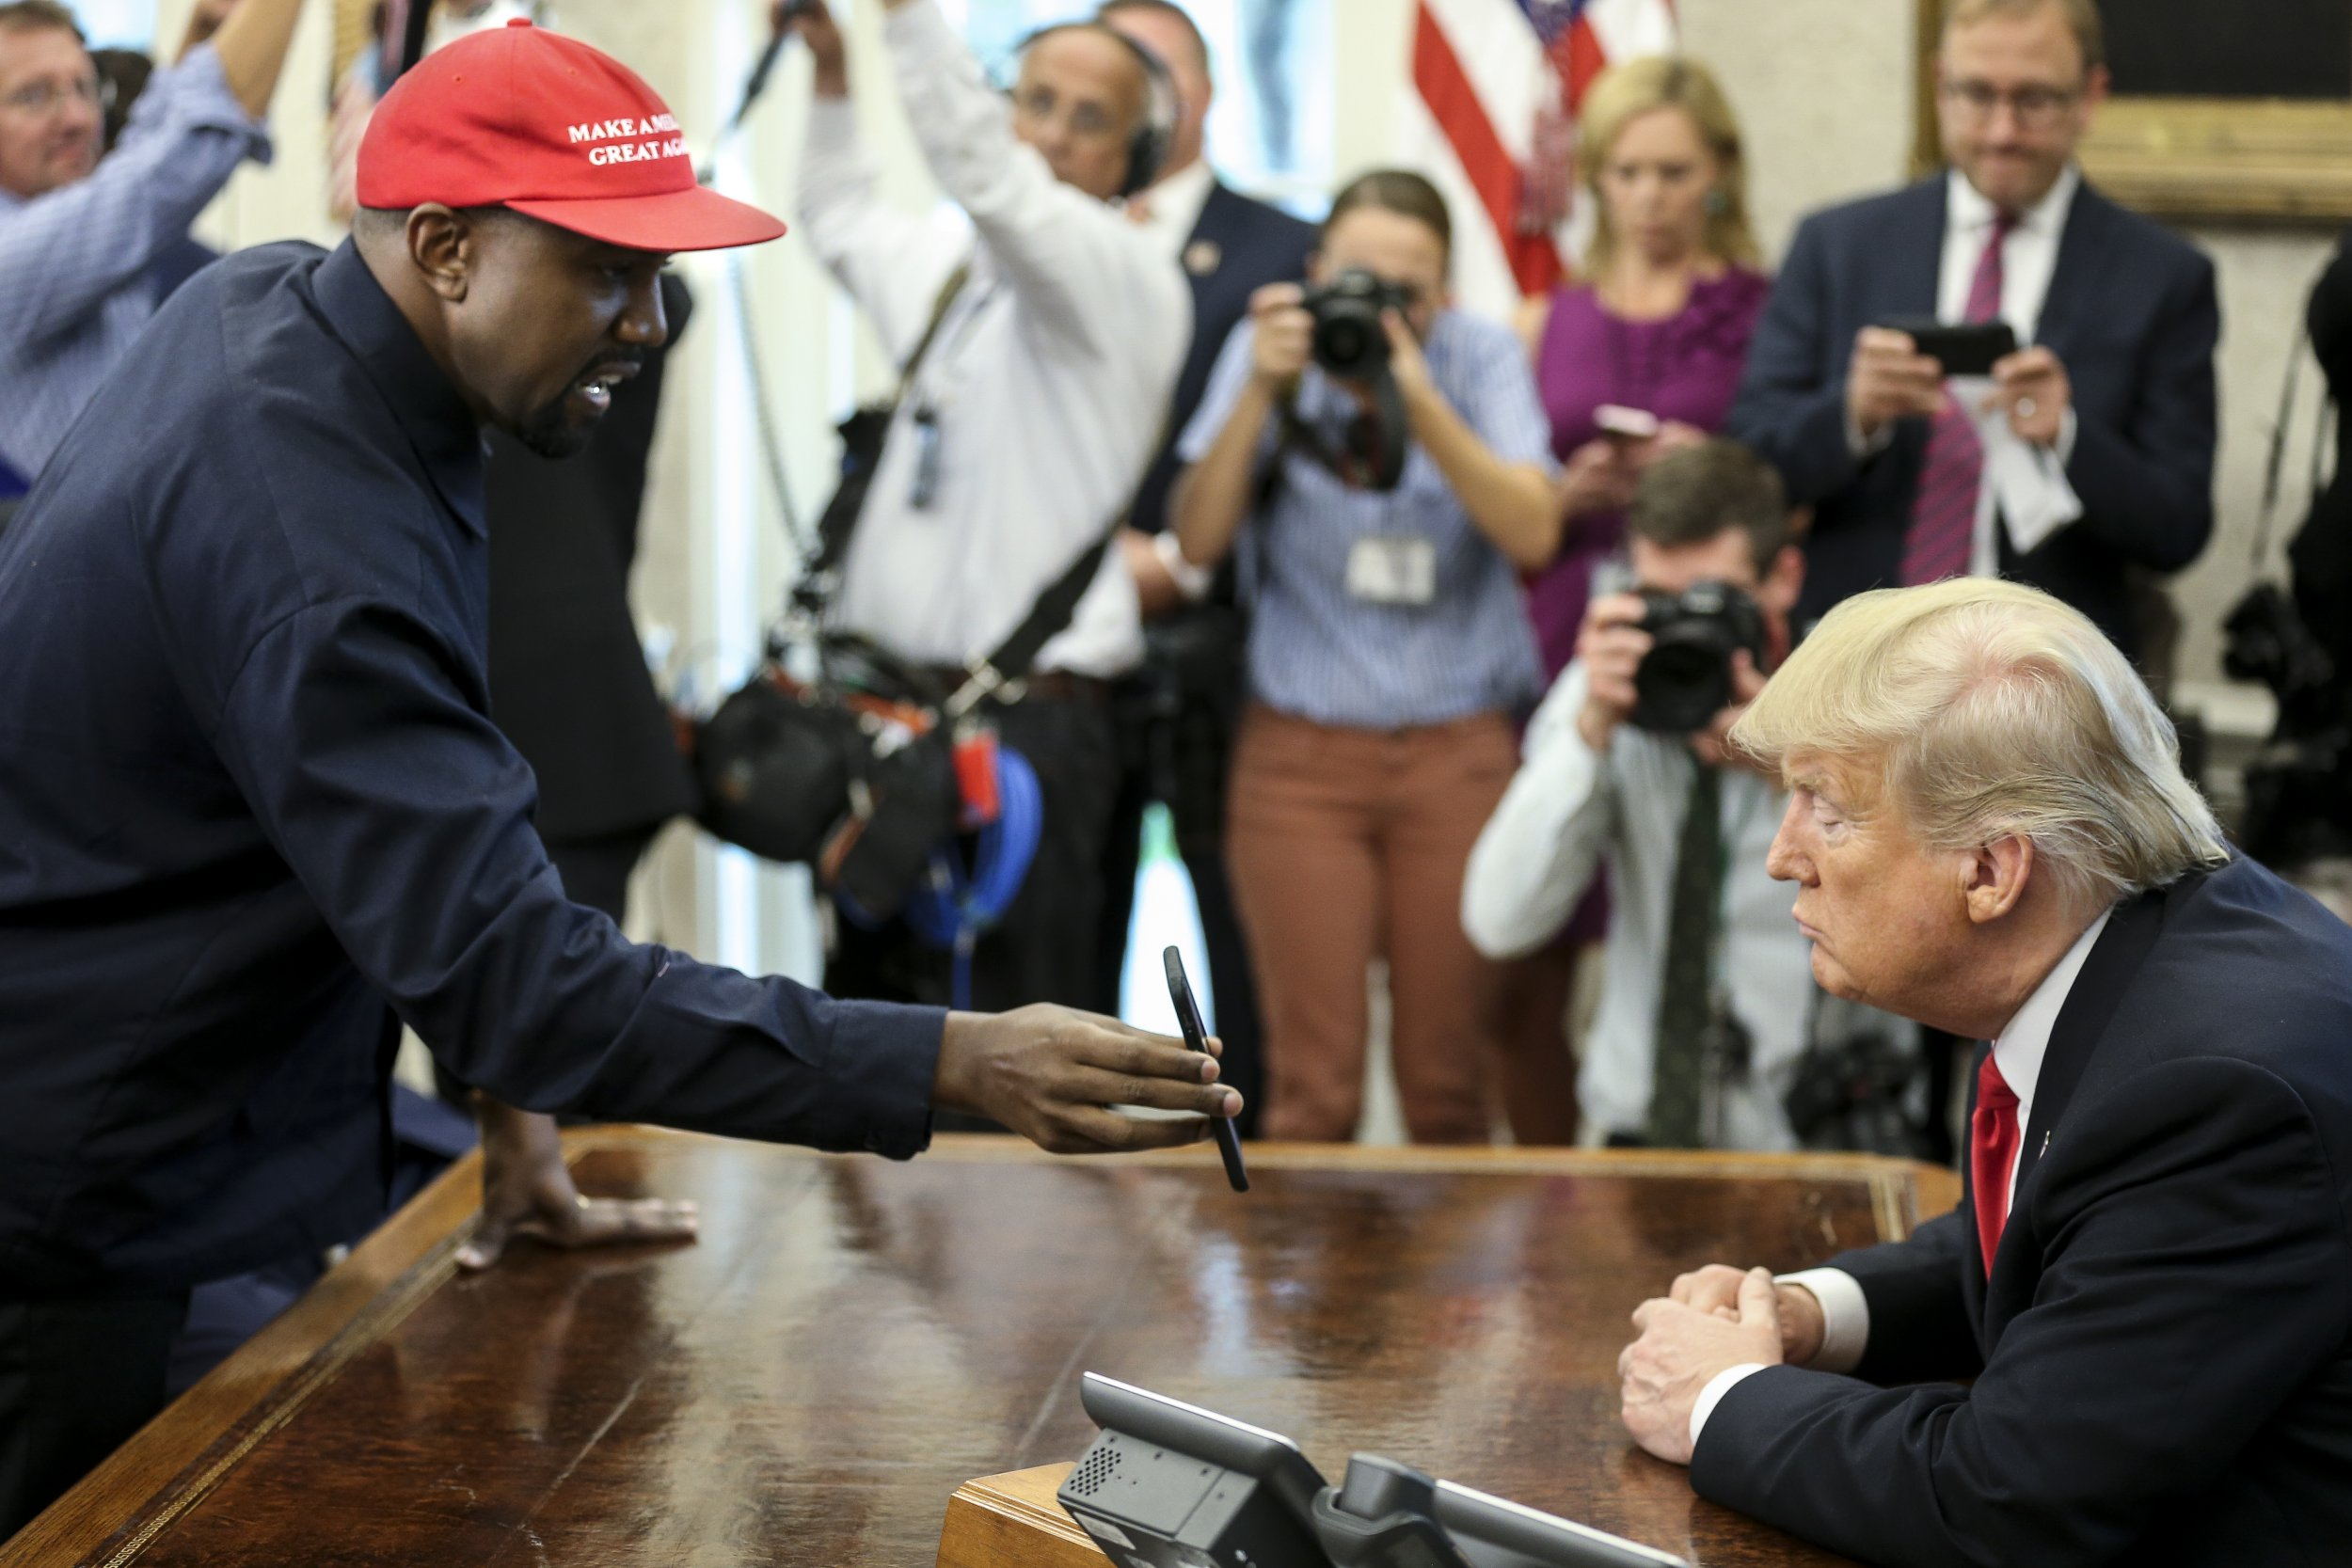 Top 5 most bizarre things Kanye West said to Trump at the Oval Office